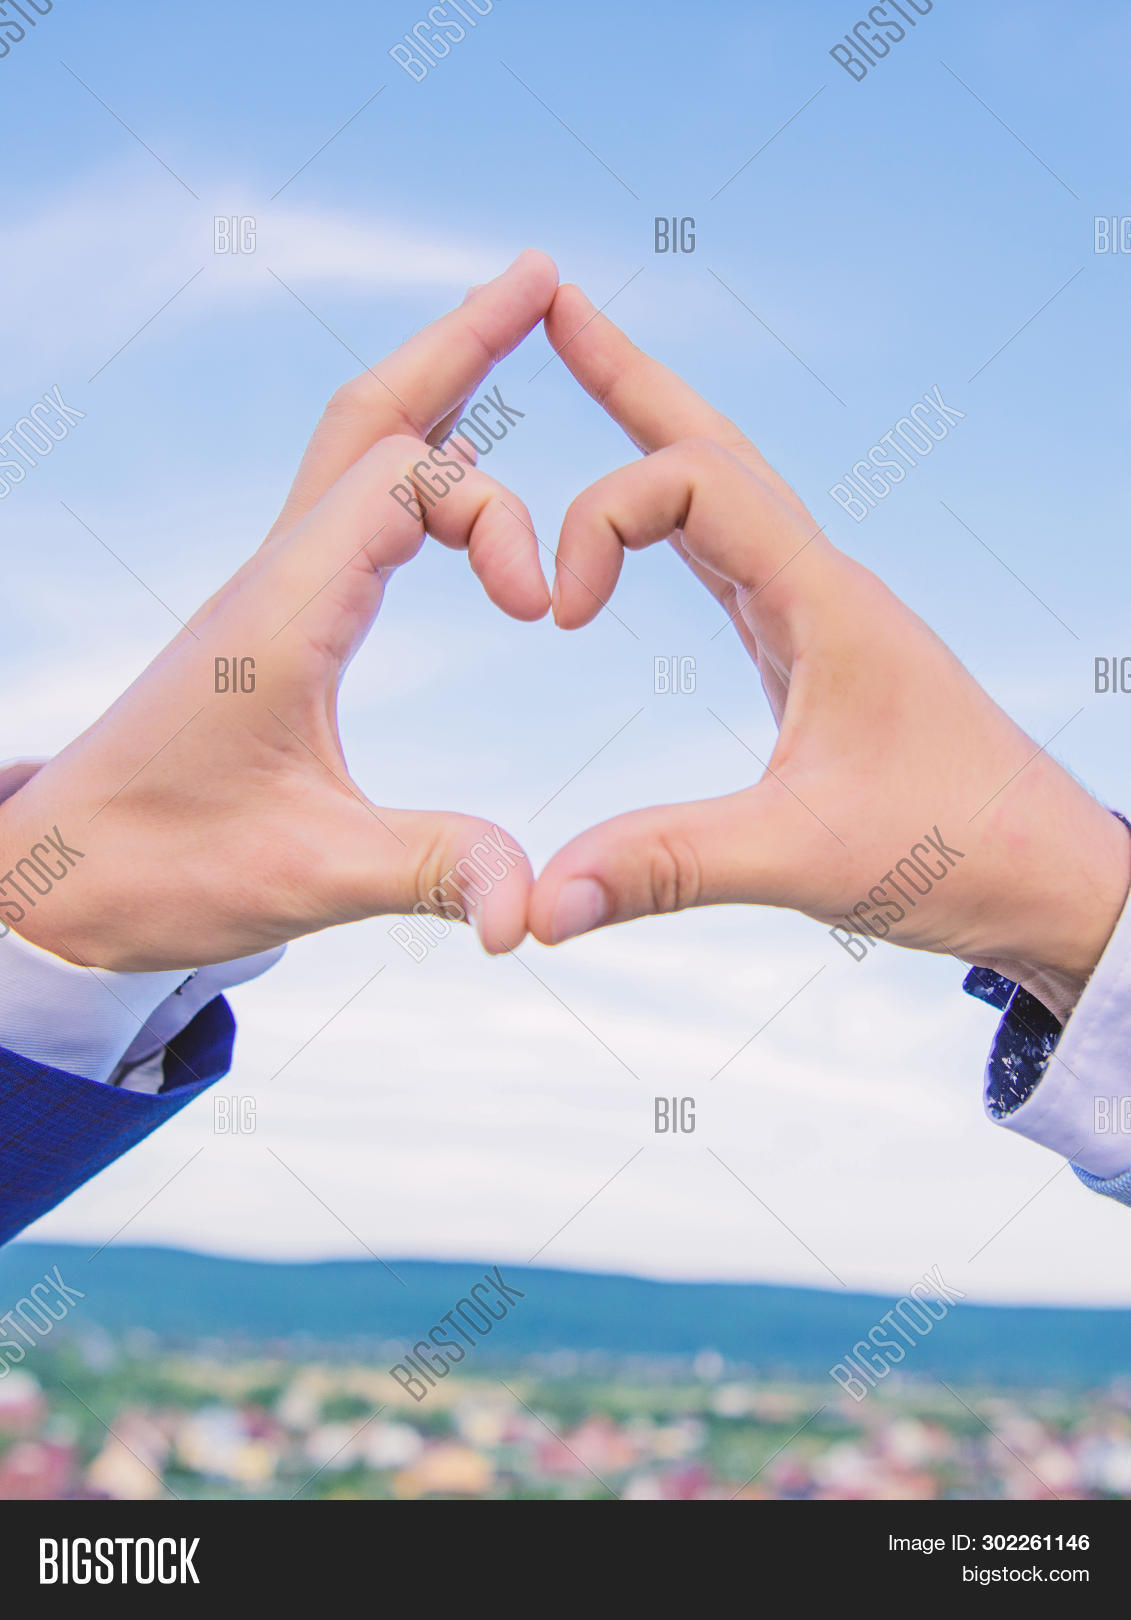 Put Picture In Heart Shape : picture, heart, shape, Hands, Heart, Shape, Image, Photo, (Free, Trial), Bigstock